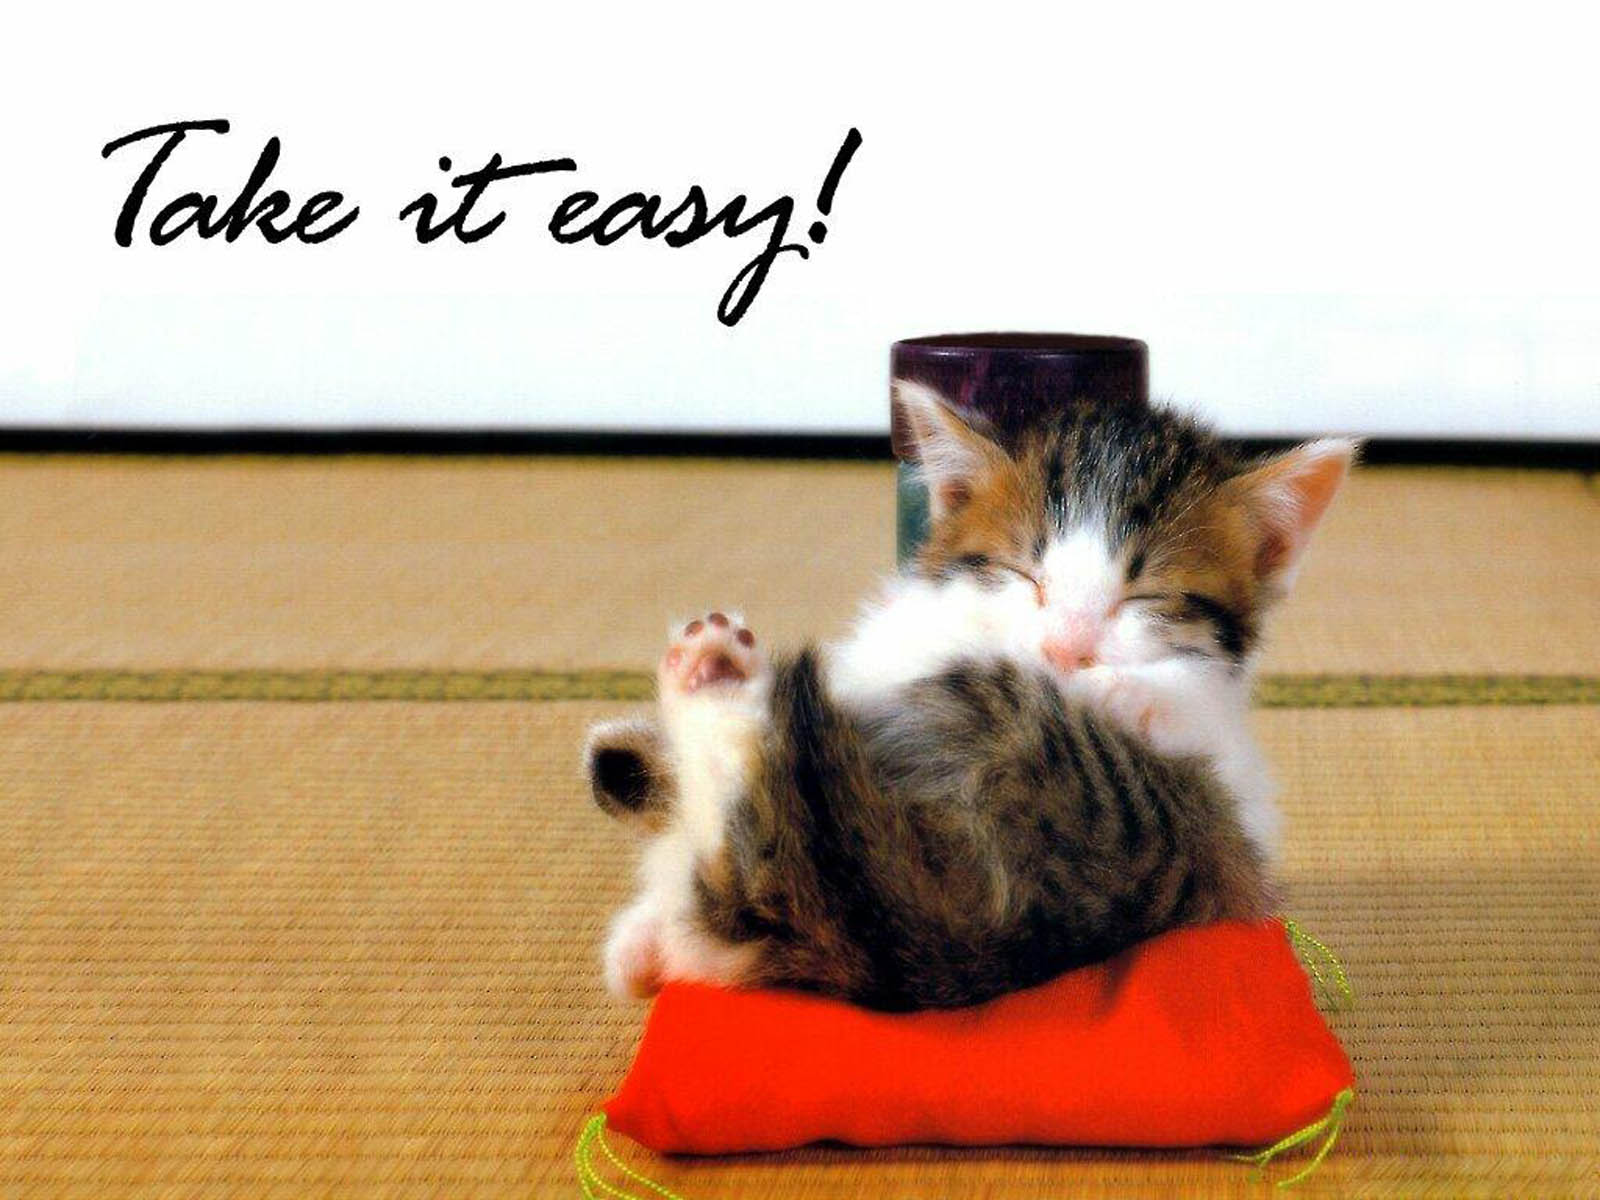 Tag Funny Pets Wallpapers Images Photos Pictures and Backgrounds 1600x1200